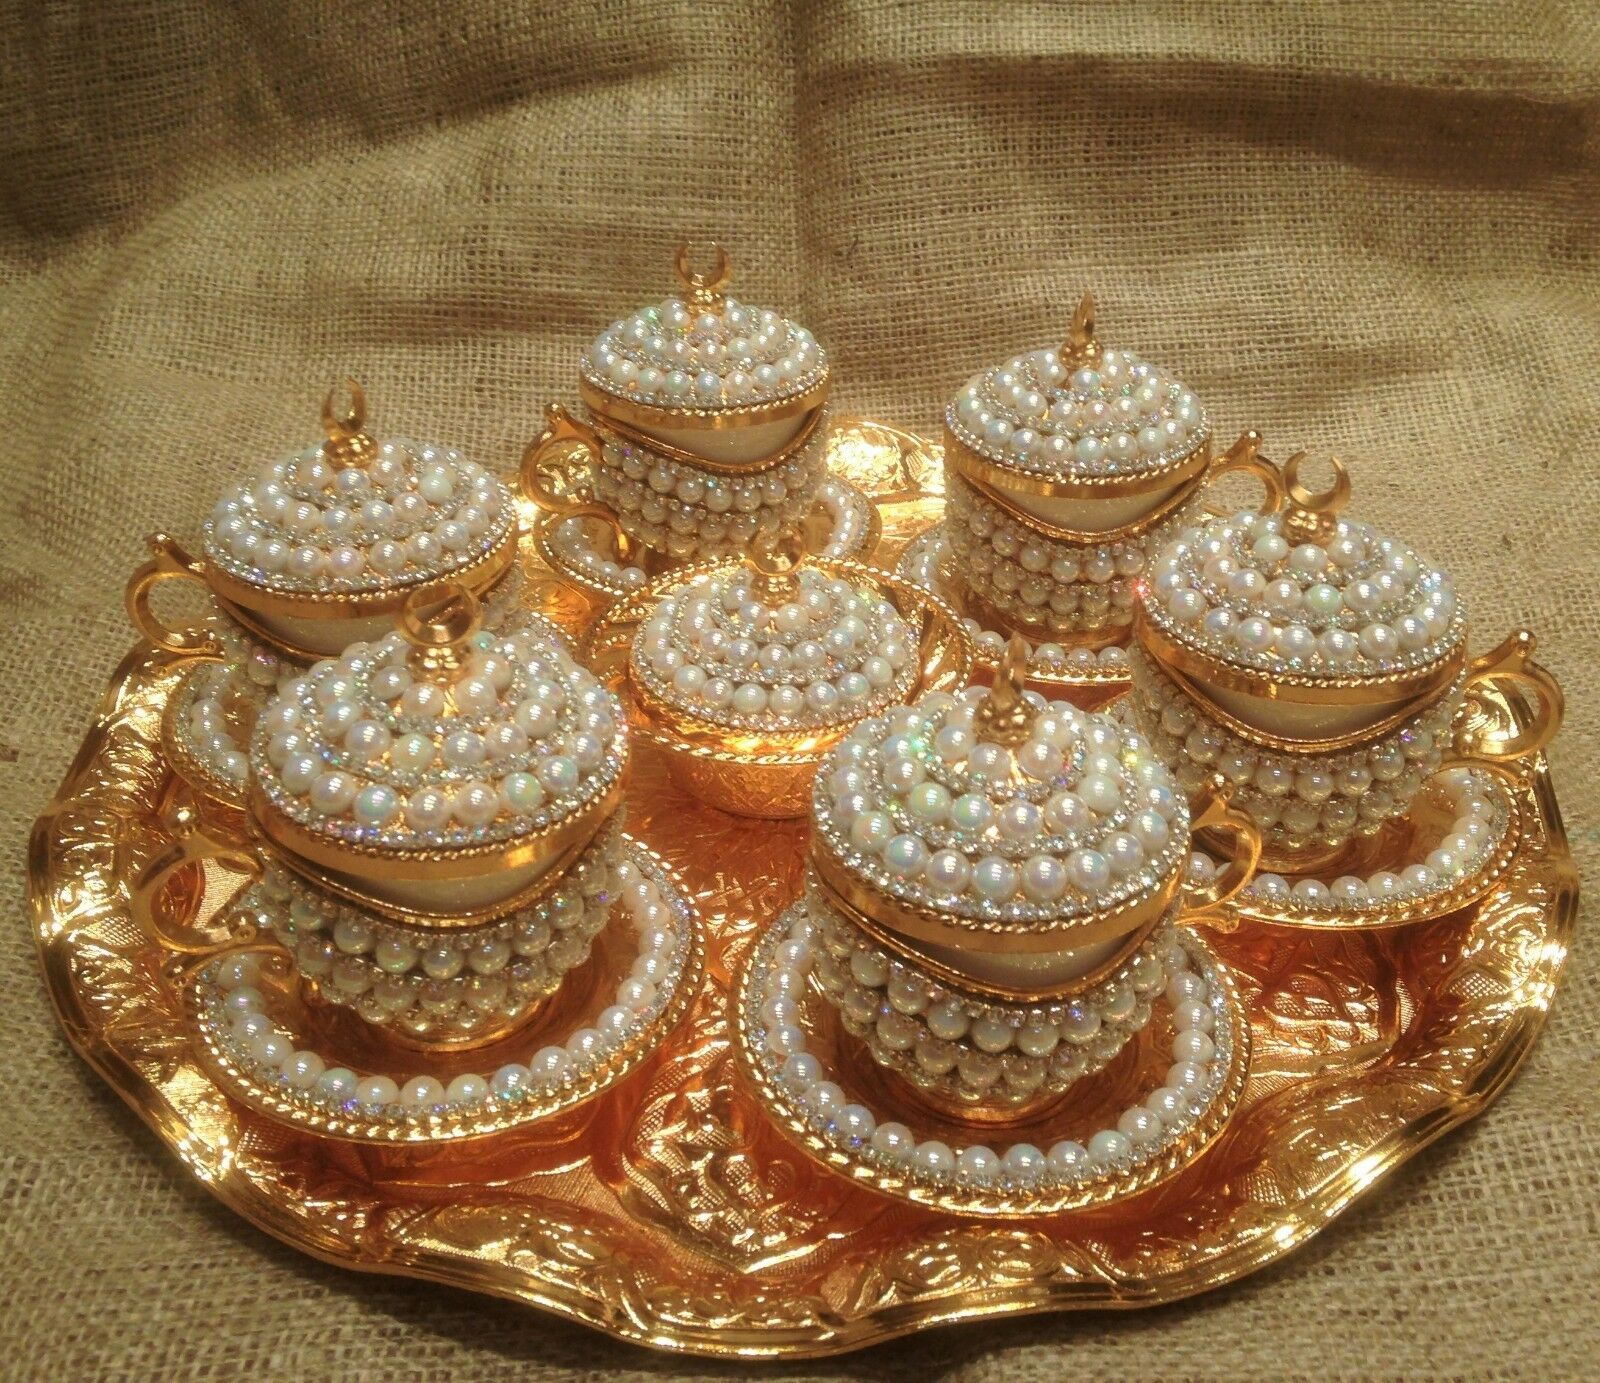 6 person coffee set crystals and beads silver n gold color porcelain style 2